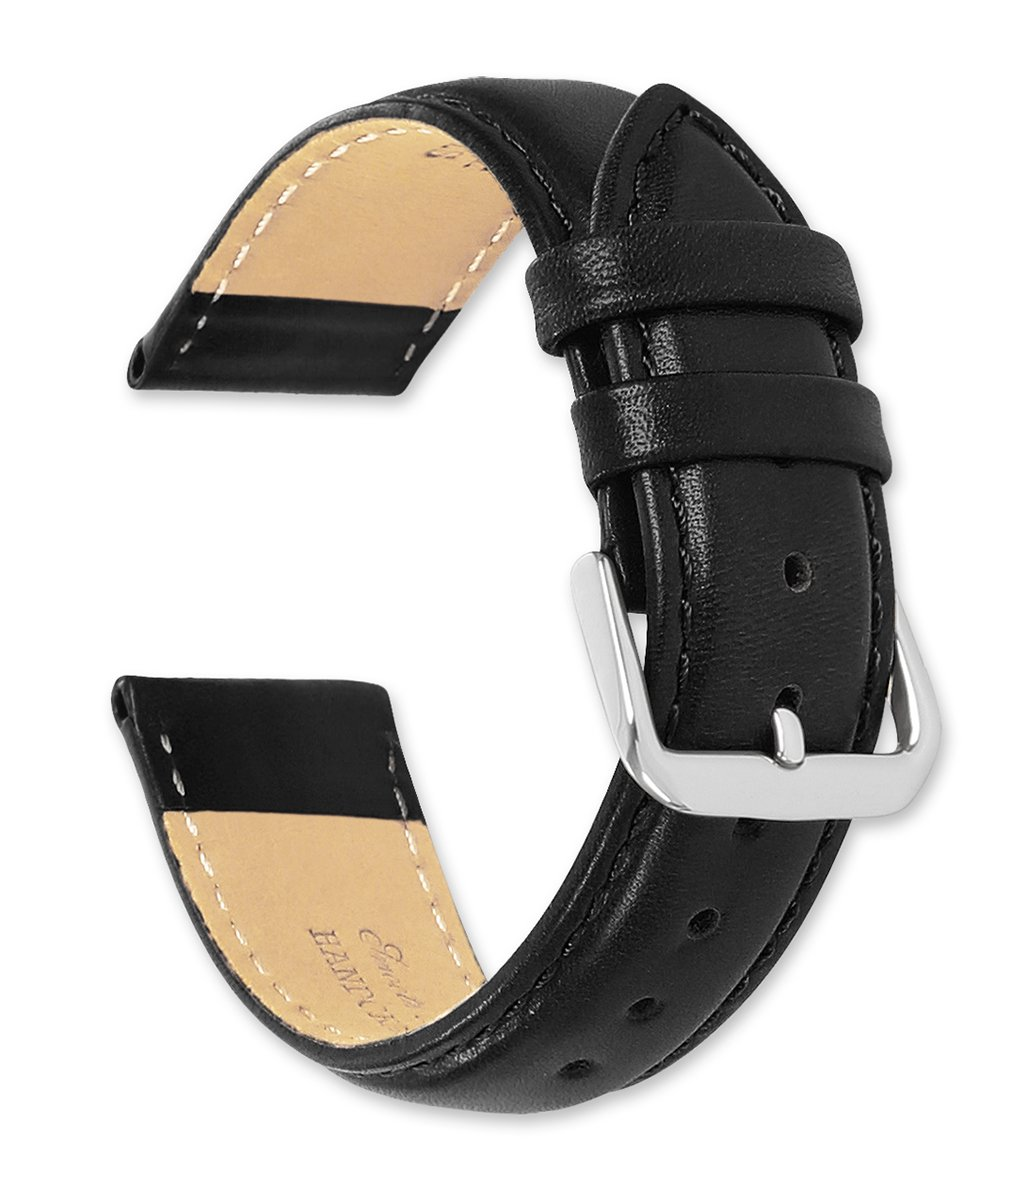 deBeer brand Smooth Leather Watch Band (Silver & Gold Buckle) - Black 18mm (Extra Long Length)